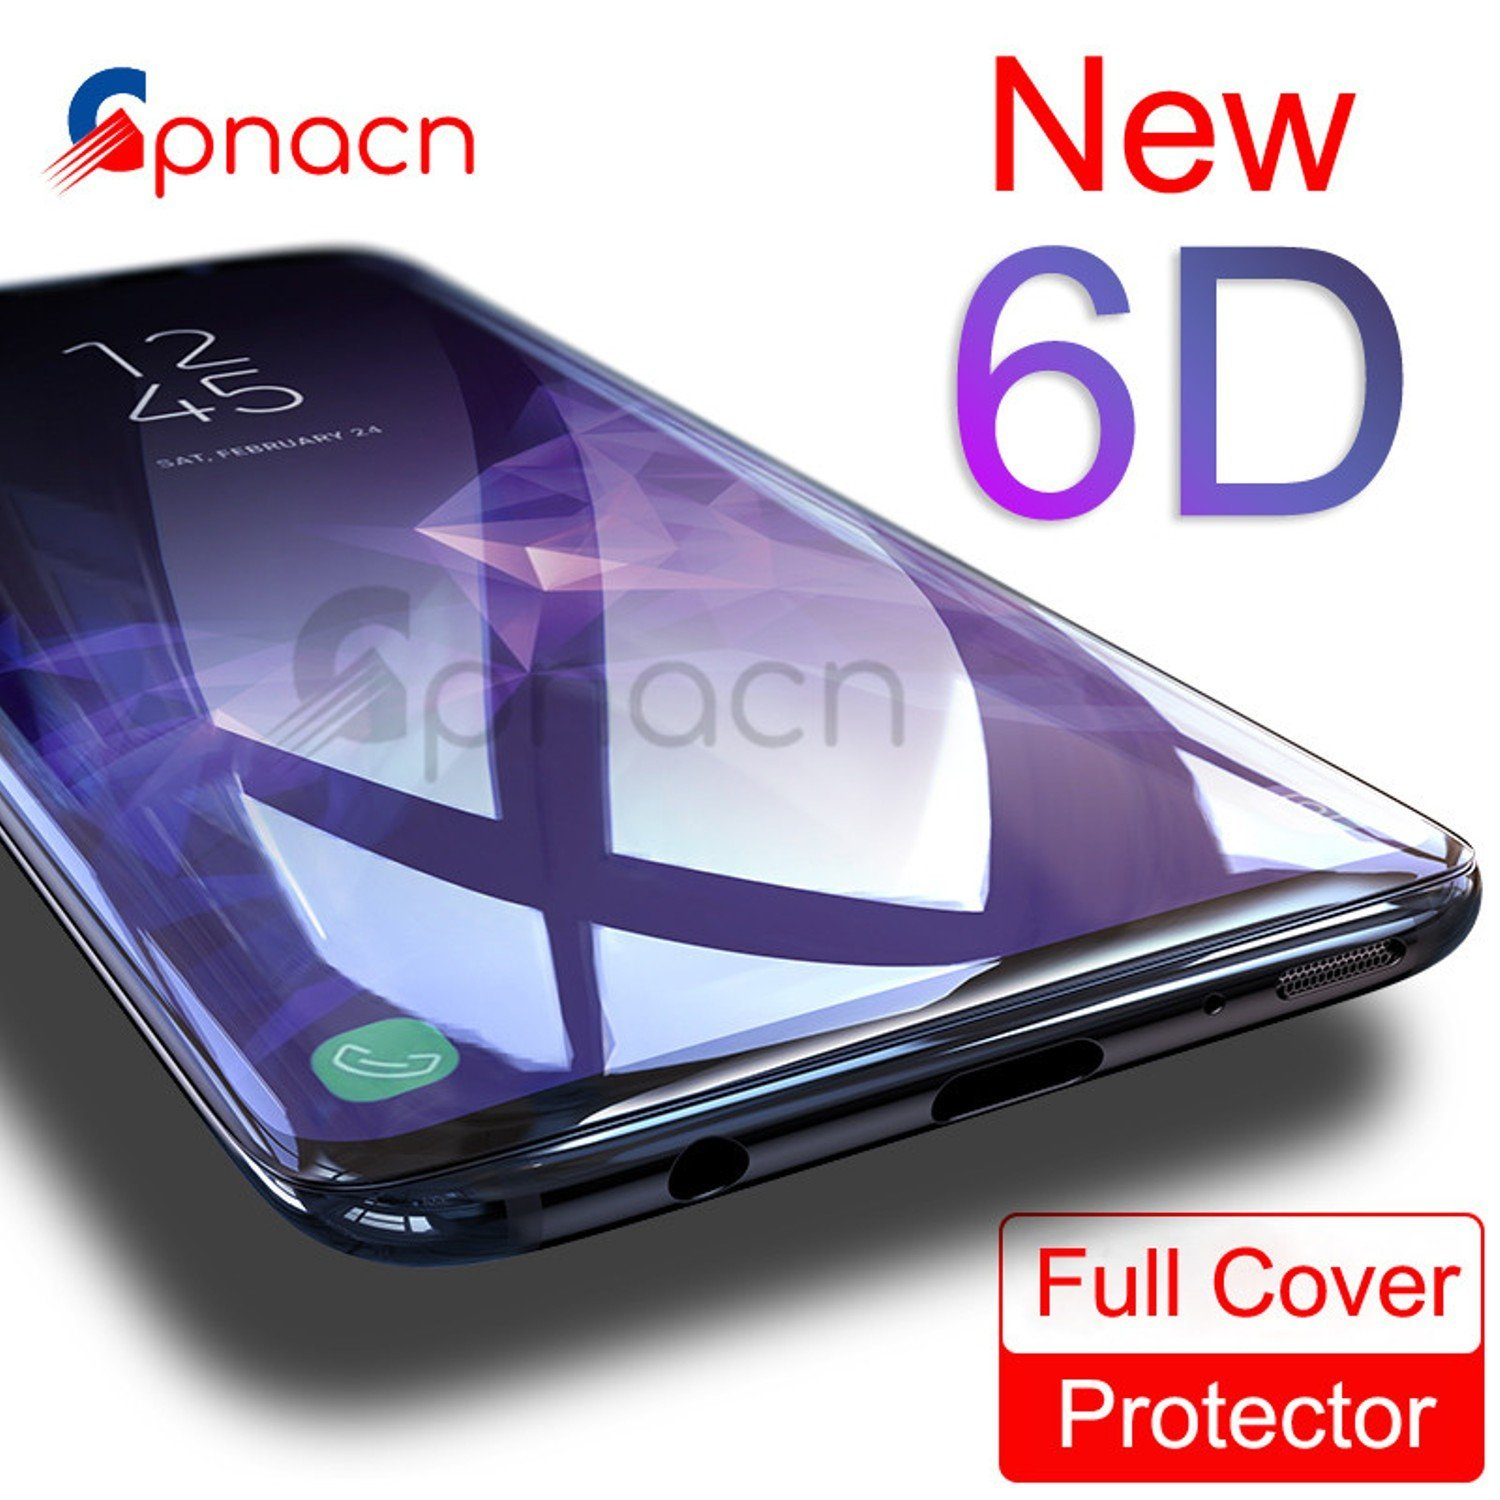 6D Curved Full Screen Cover Tempered Glass for Samsung Galaxy S8 S9 Plus Note 8 – 6D Full Curved Cover Edge Screen Protector – 6D Screen Replacement 9H